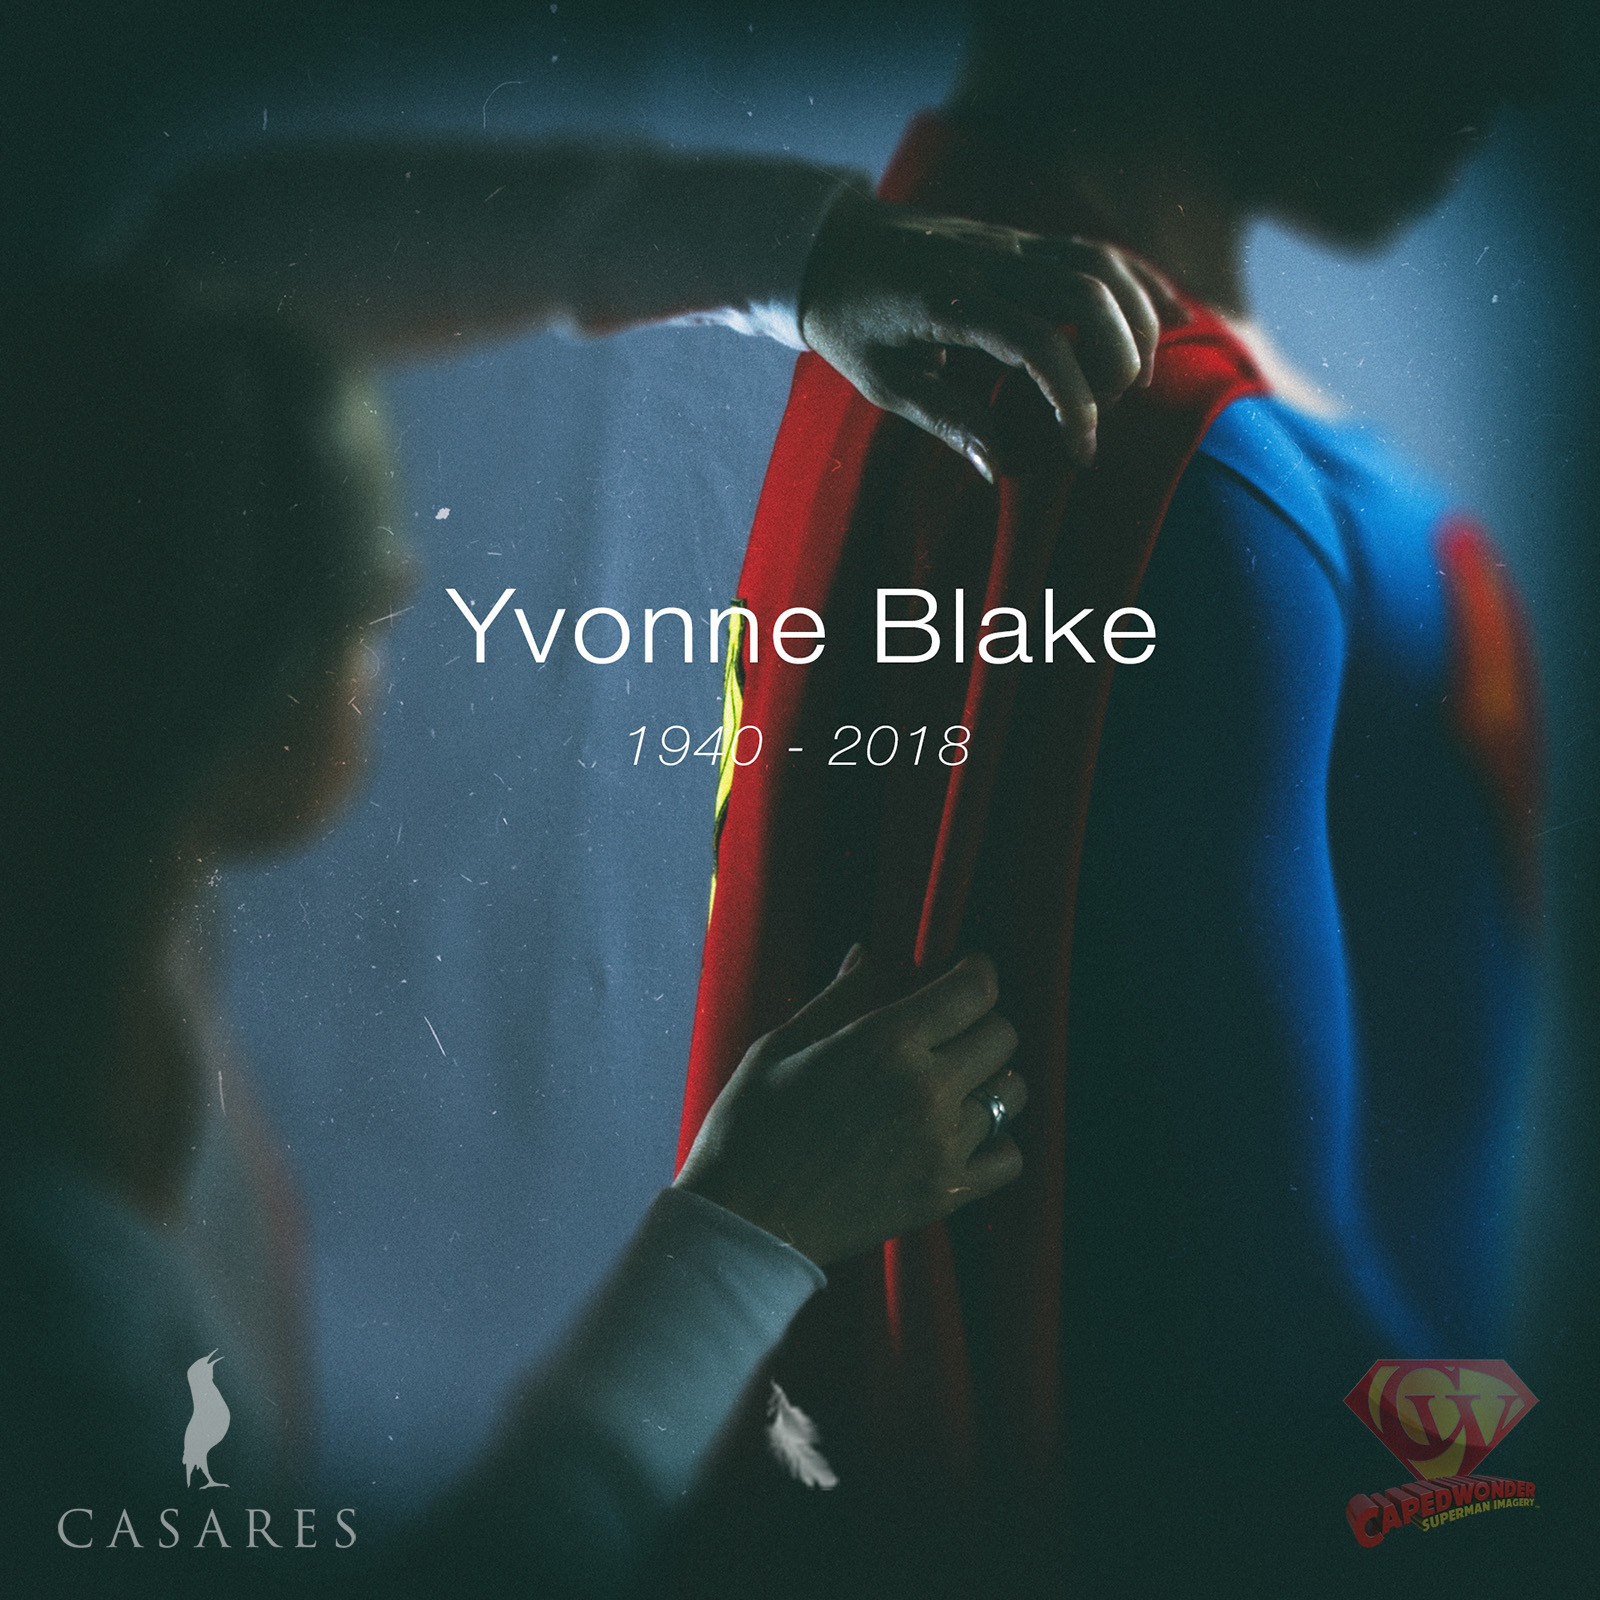 CW-Yvonne-Blake-tribute-Casares